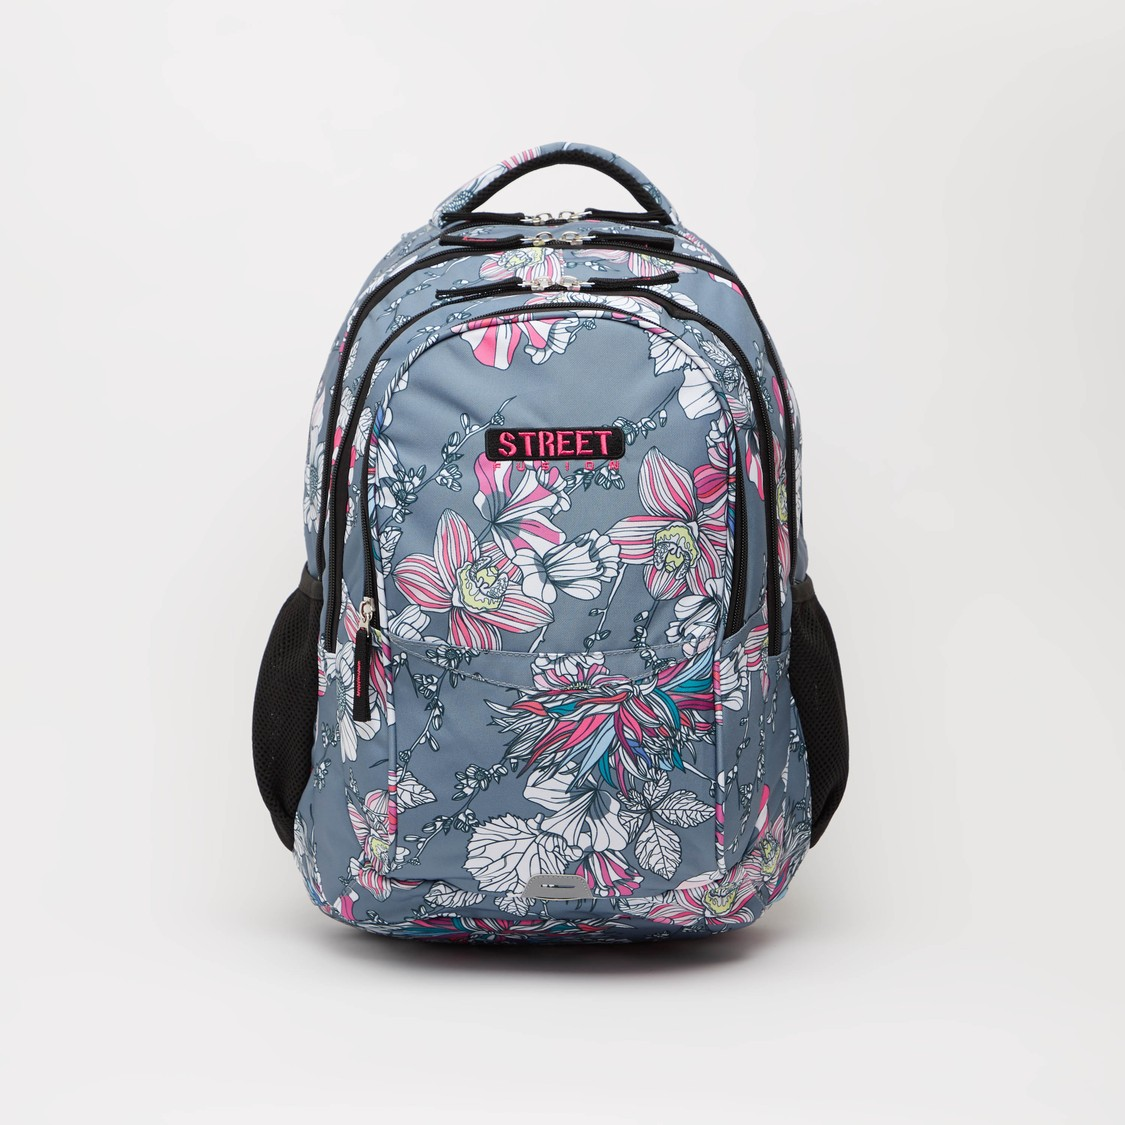 Printed Backpack with Adjustable Straps and Zip Closure - 19 Inches